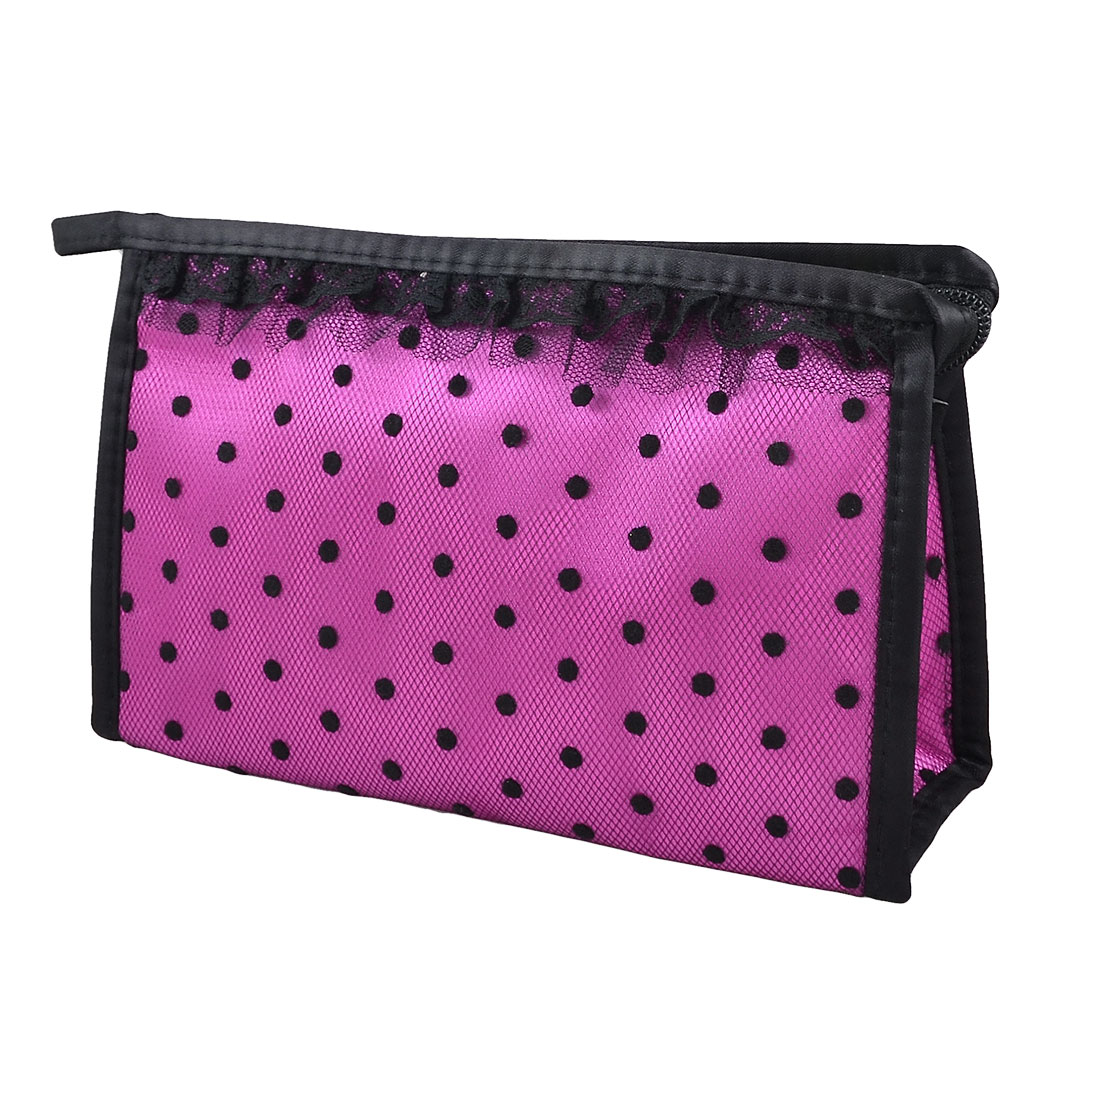 Zip up Fuchsia Black Dots Lace Meshy Cosmetic Bag Organizer Lipstick Perfume Holder